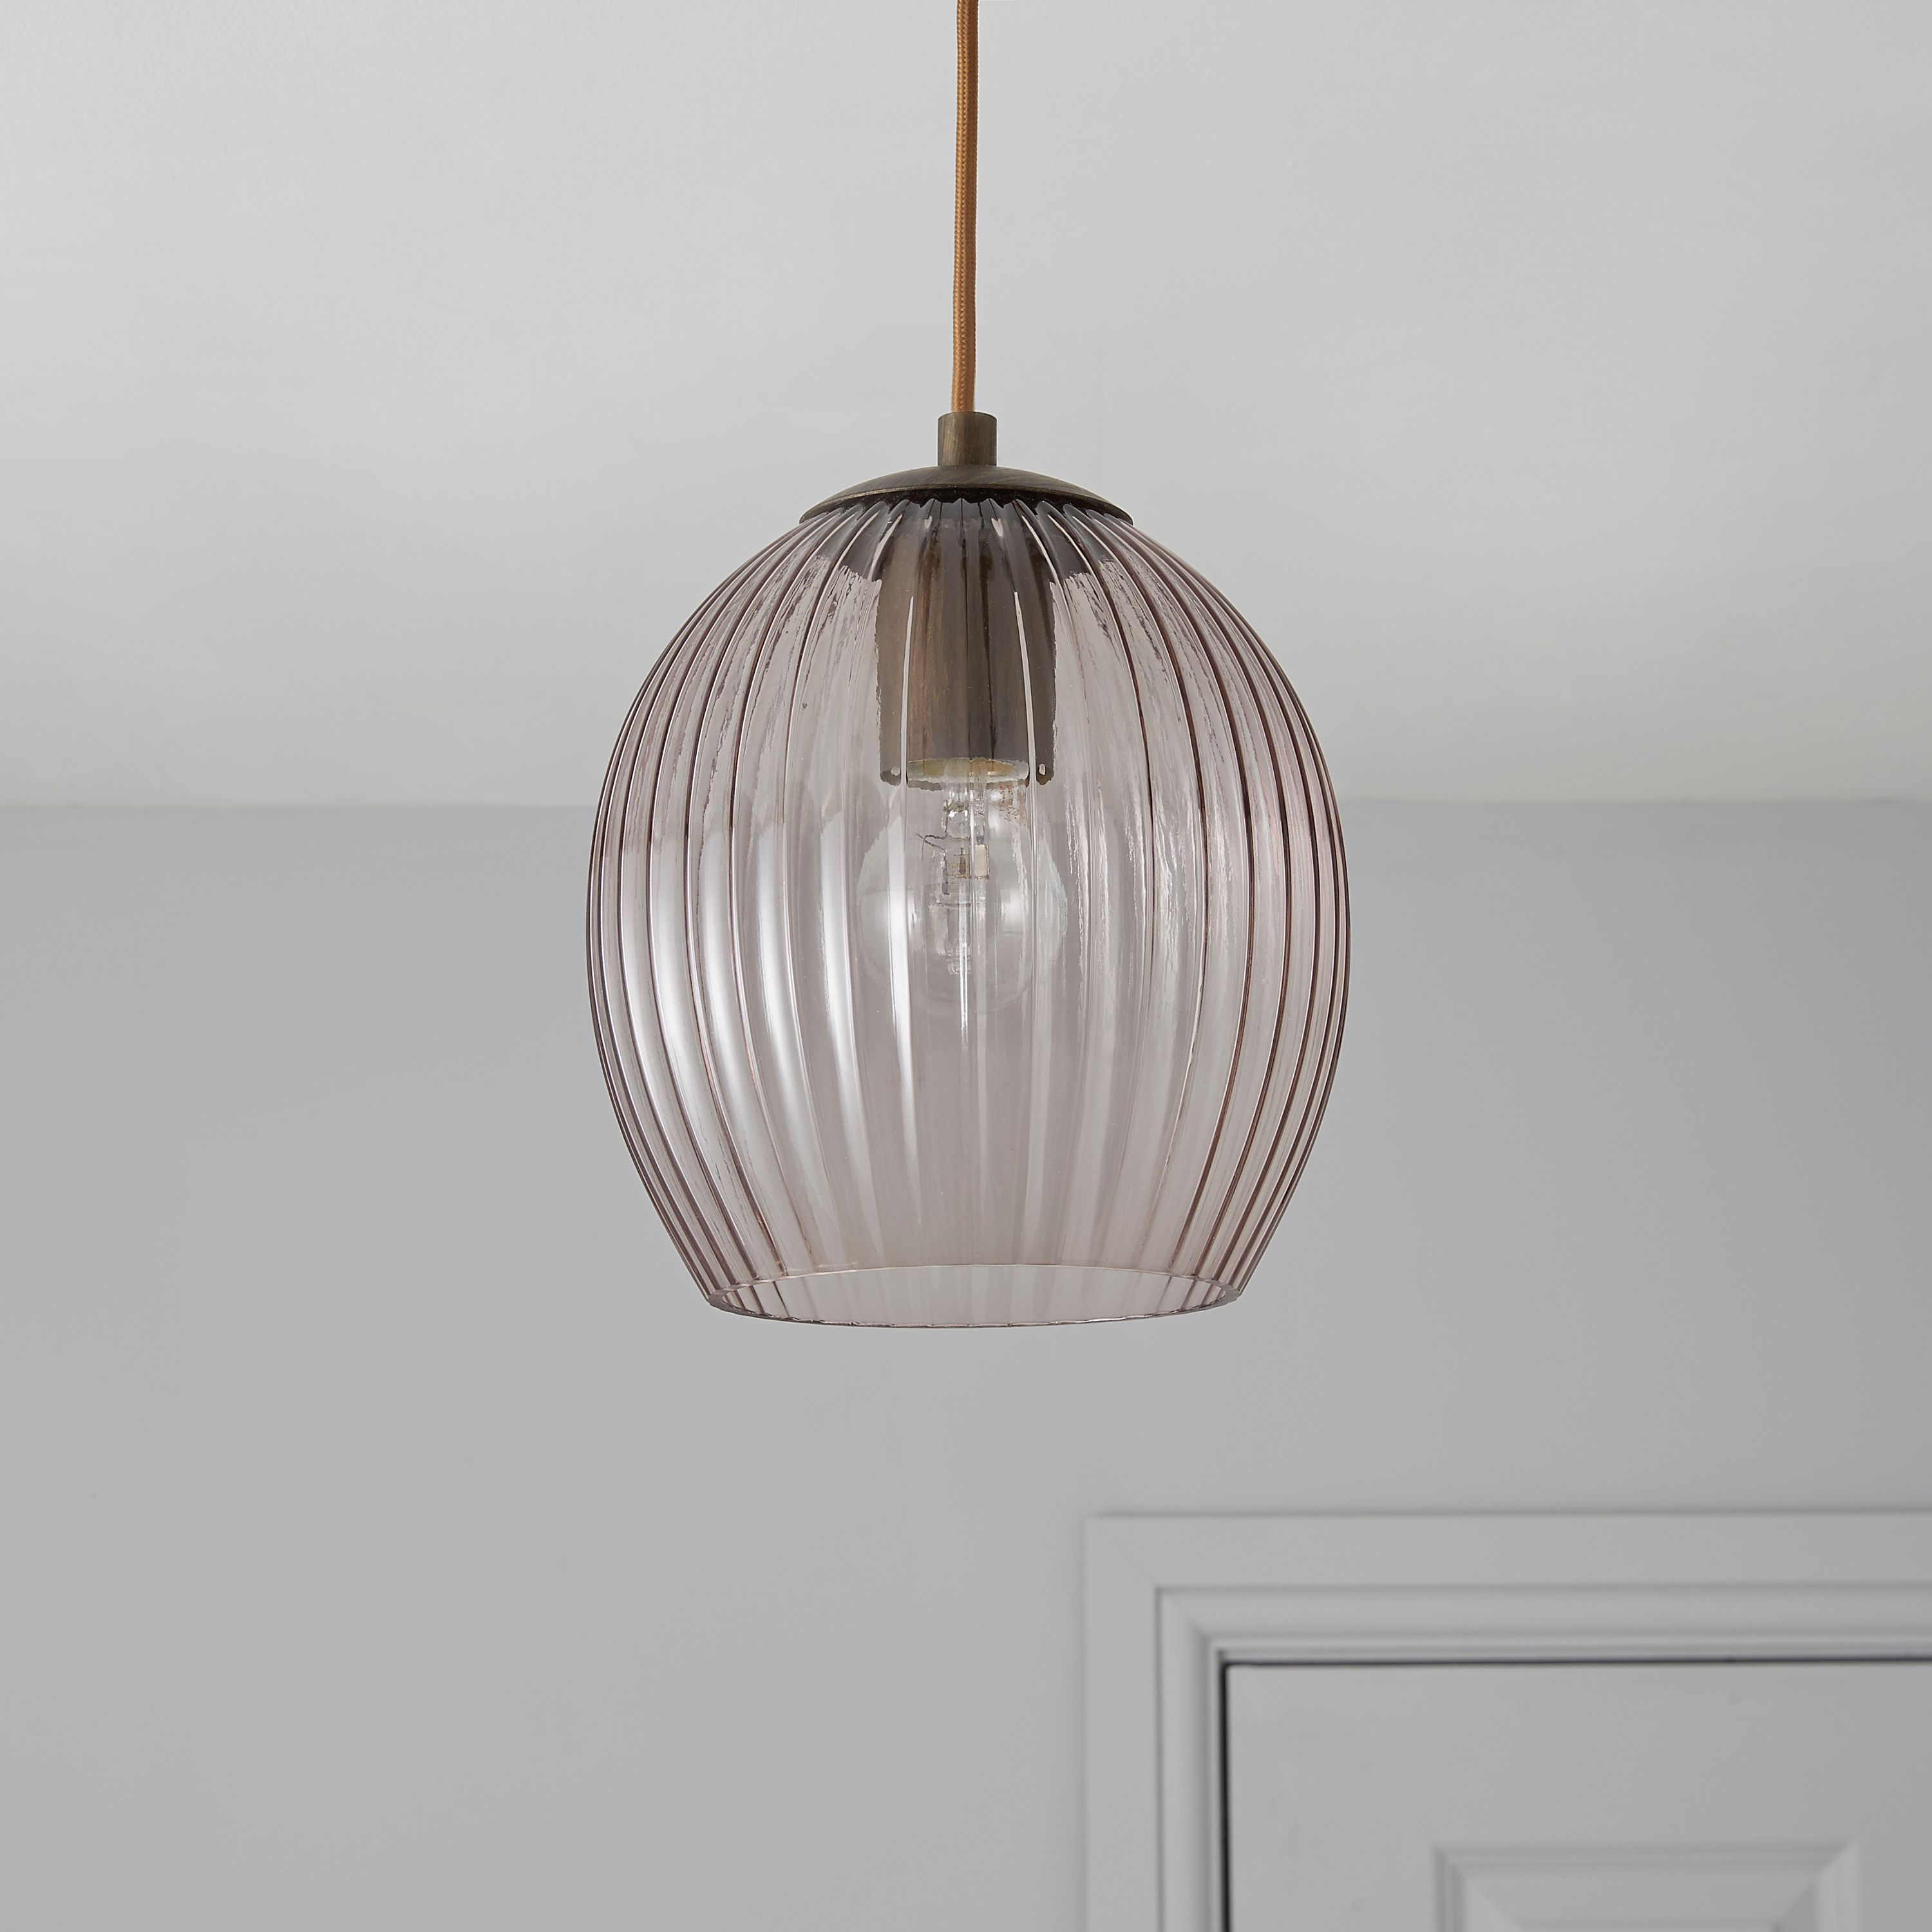 Charissa grey tinted pendant ceiling light departments diy at charissa grey tinted pendant ceiling light departments diy at bq mozeypictures Image collections